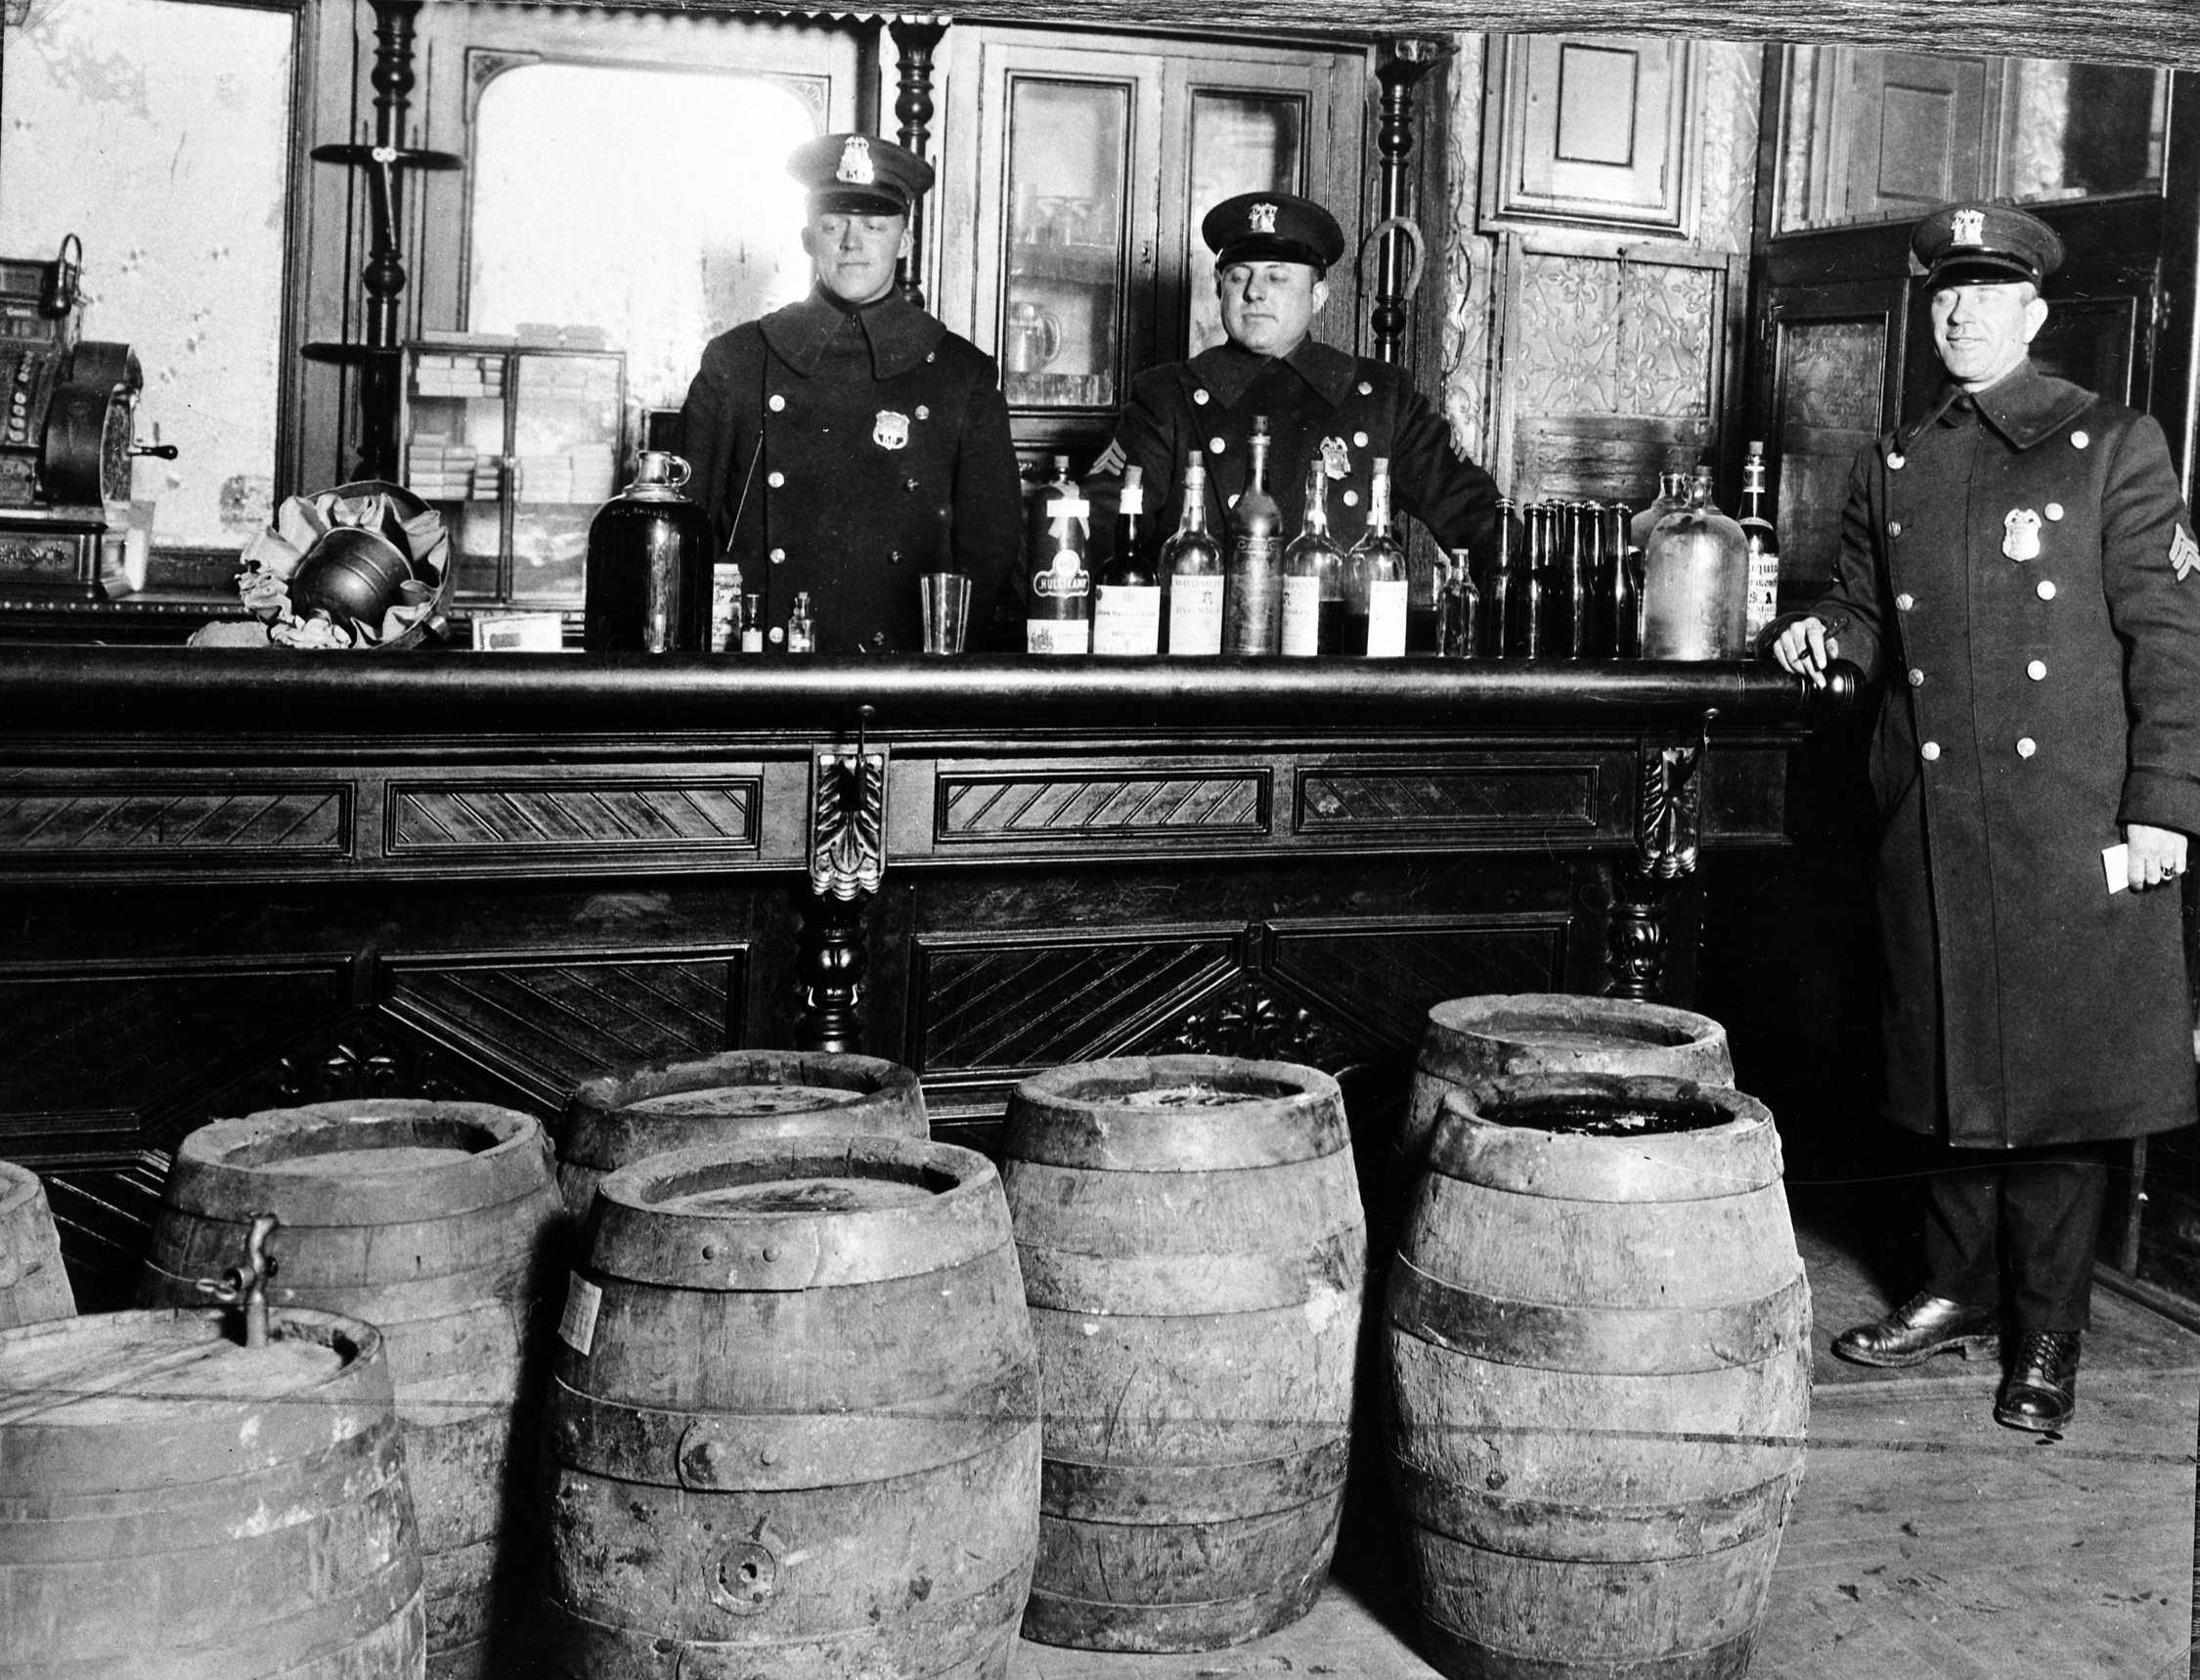 Long Island during Prohibition, 1920-1933